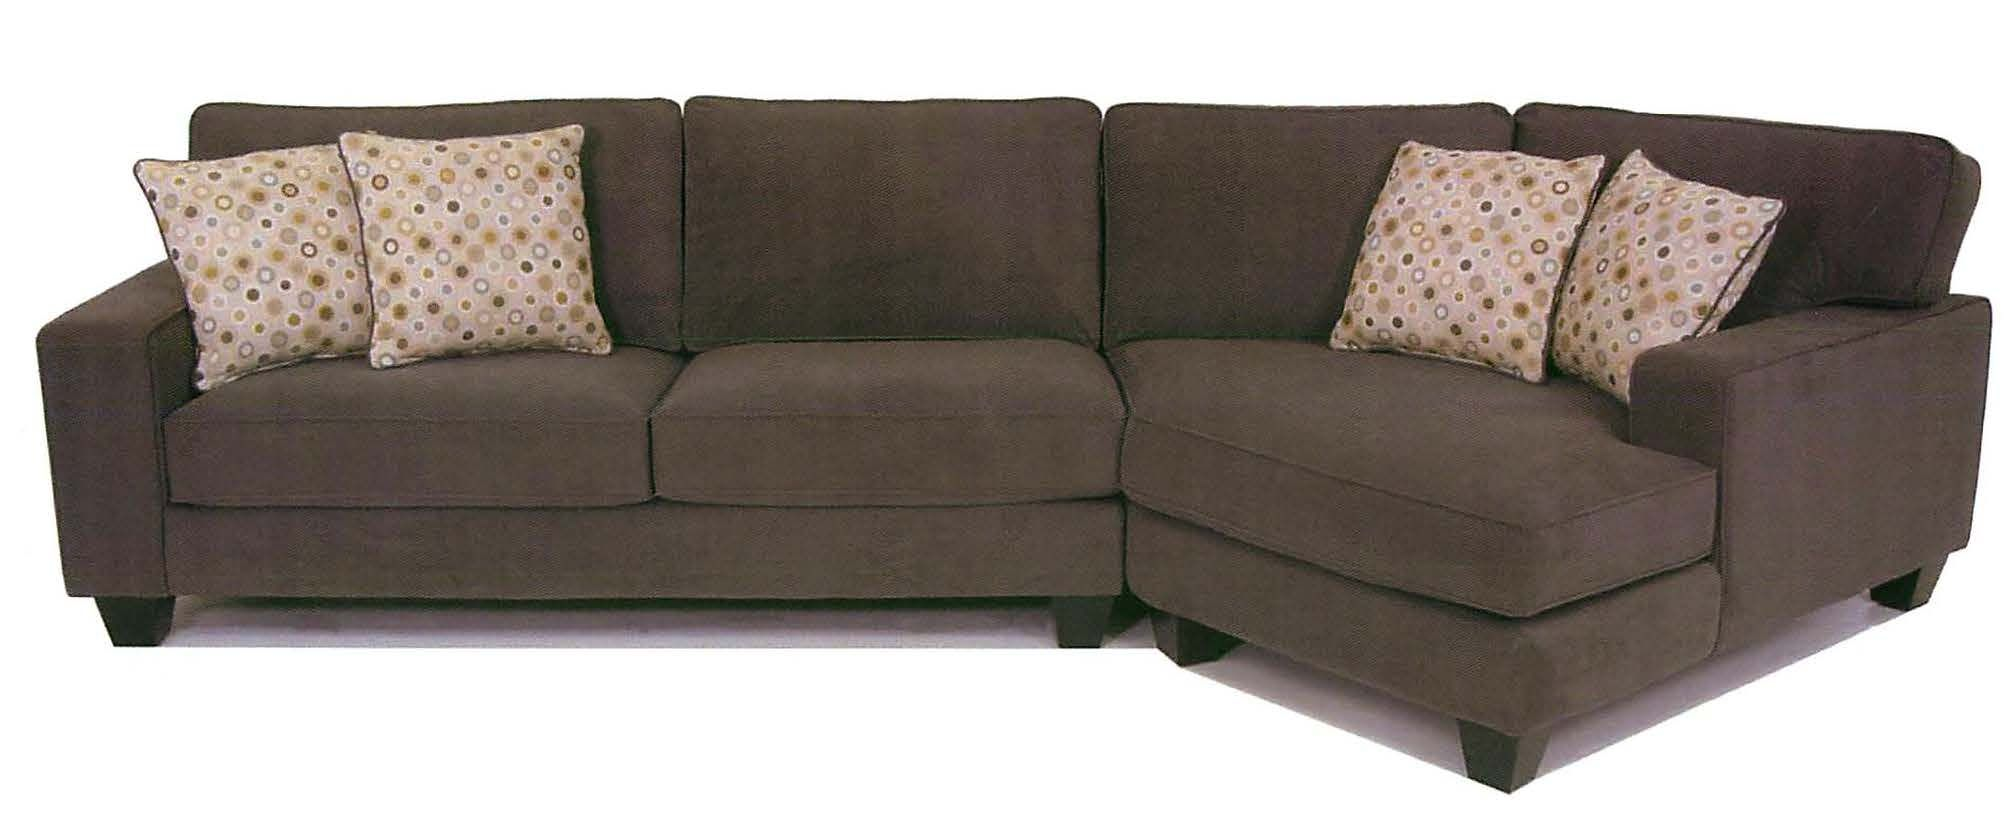 Stupendous Dyn Macaya Sectional 5161 With Right Cuddle Corner 1875 Beutiful Home Inspiration Aditmahrainfo